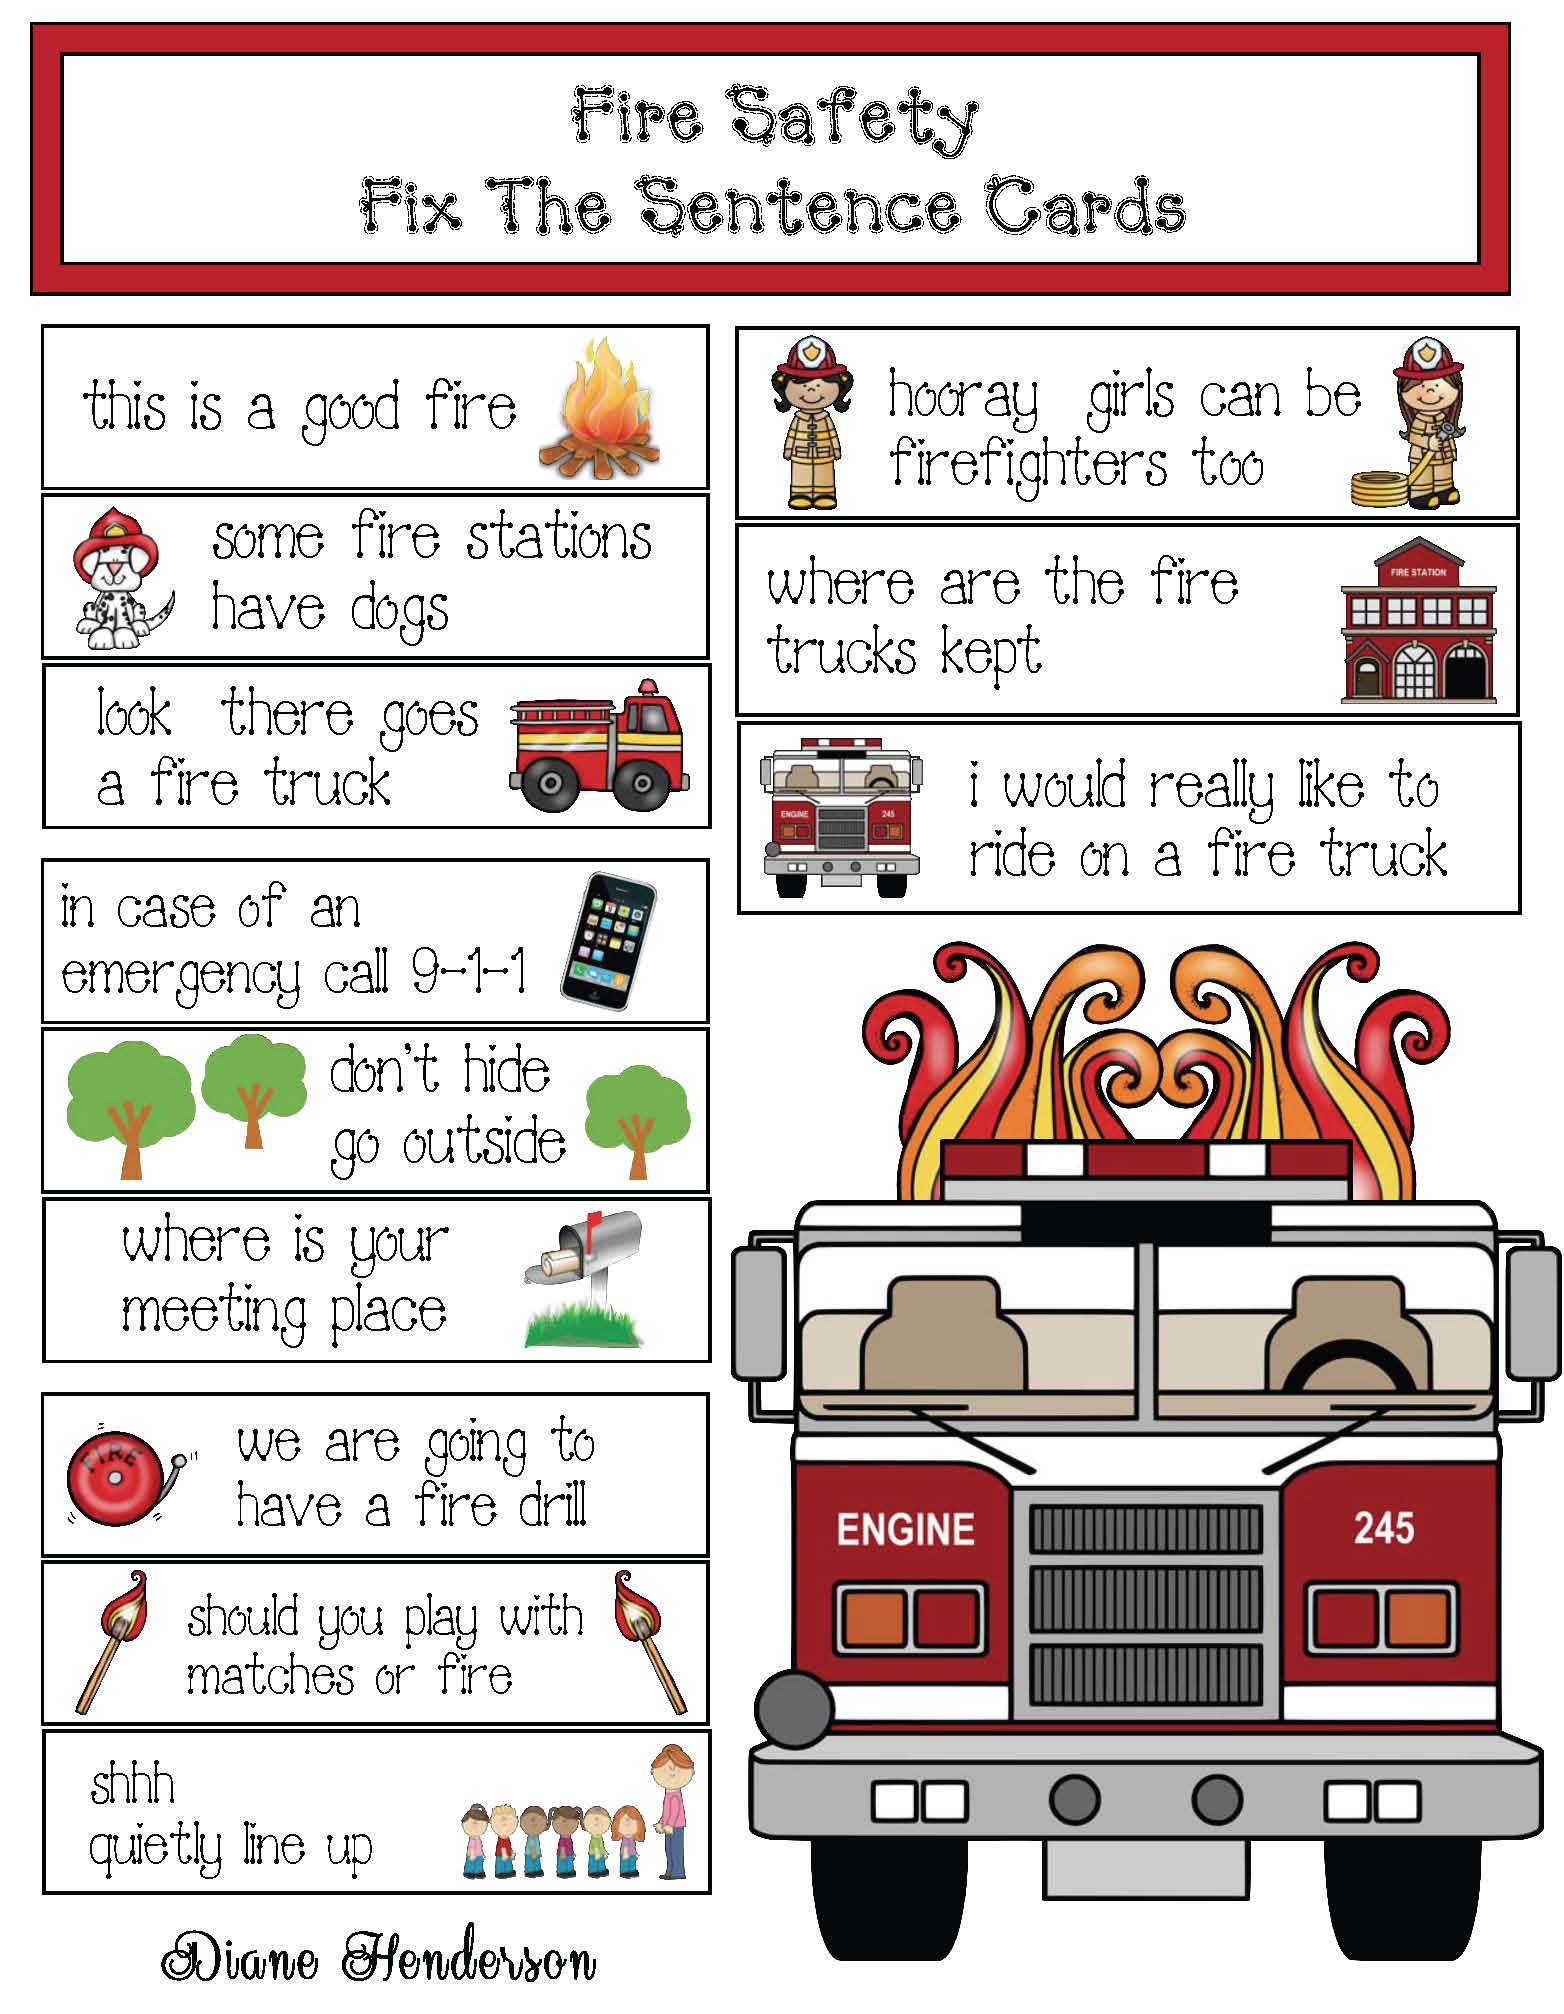 good fire bad fire activities, good fire photographs, fire safety games, fire safety activities, fire safety centers, fire safety songs, 911 songs, fire safety crafts, end punctuation activities